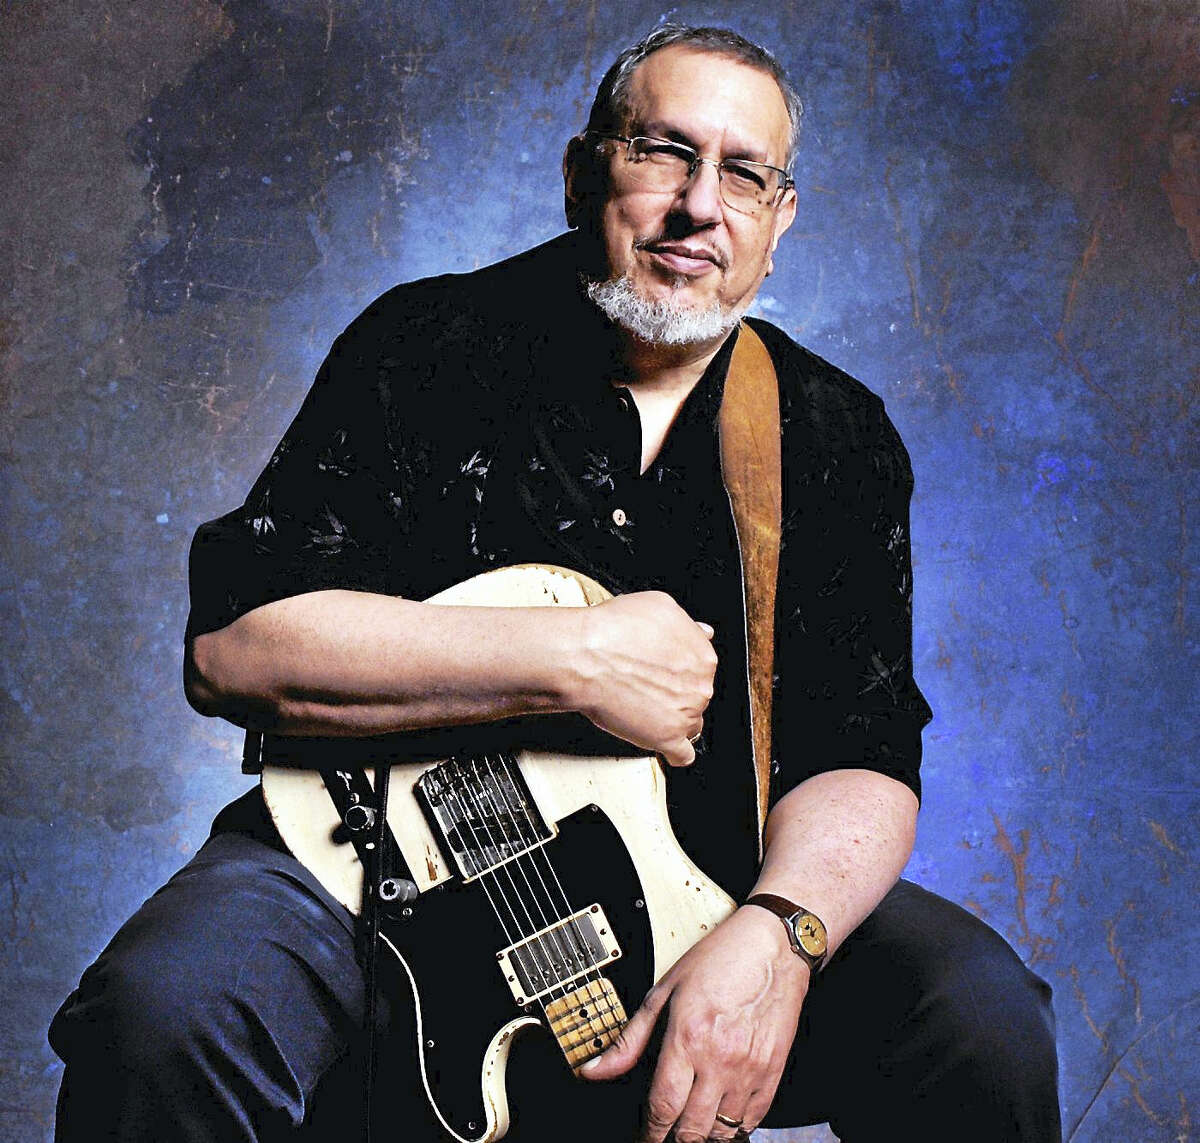 Contributed photoDave Bromberg returns for the fifth time to the Infinity Music Hall stage. To purchase tickets for his upcoming concert in Hartford on Saturday March 19, call the Infinity Hall box office at 866-666-6306 or go to www.infinityhall.com.